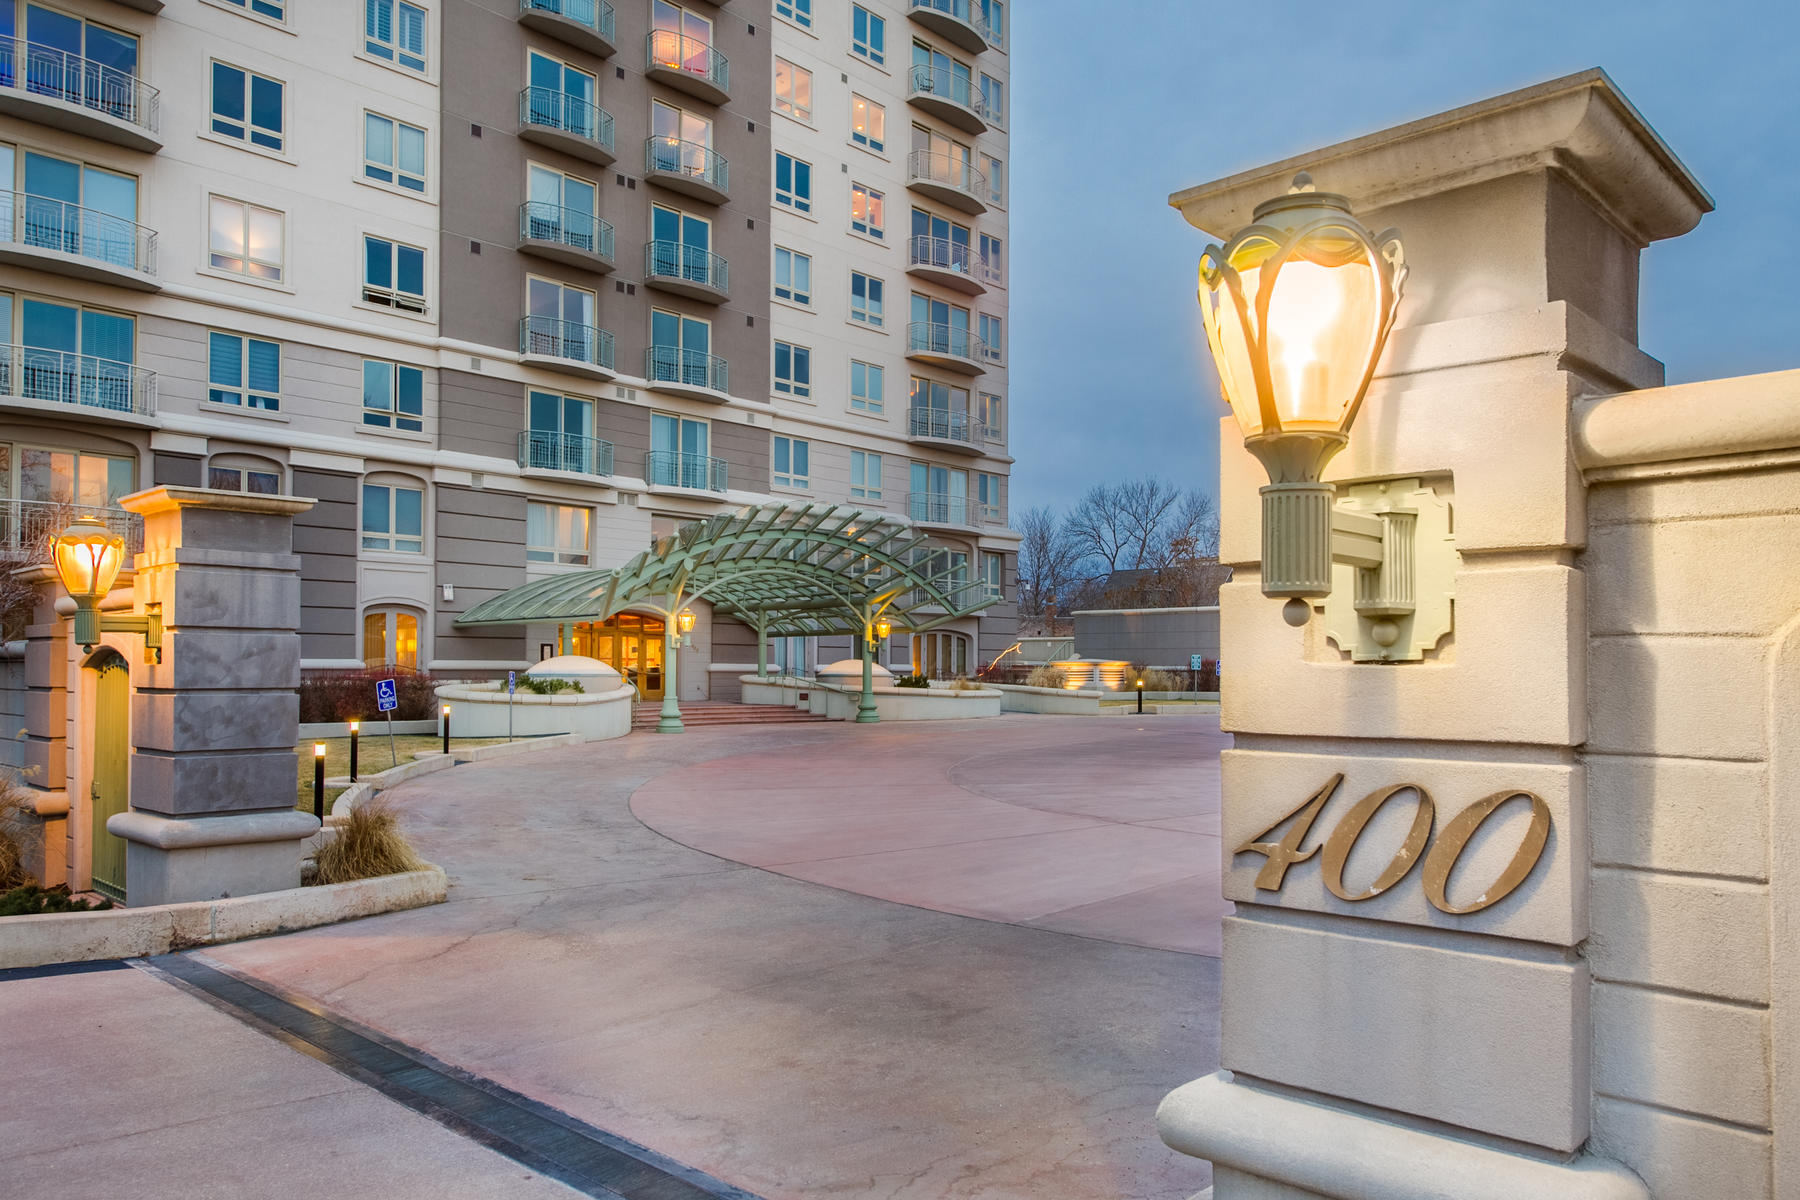 Condominium for Active at Great Location Between Cherry Creek And Downtown Denver! 400 E 3rd Ave #802 Denver, Colorado 80203 United States